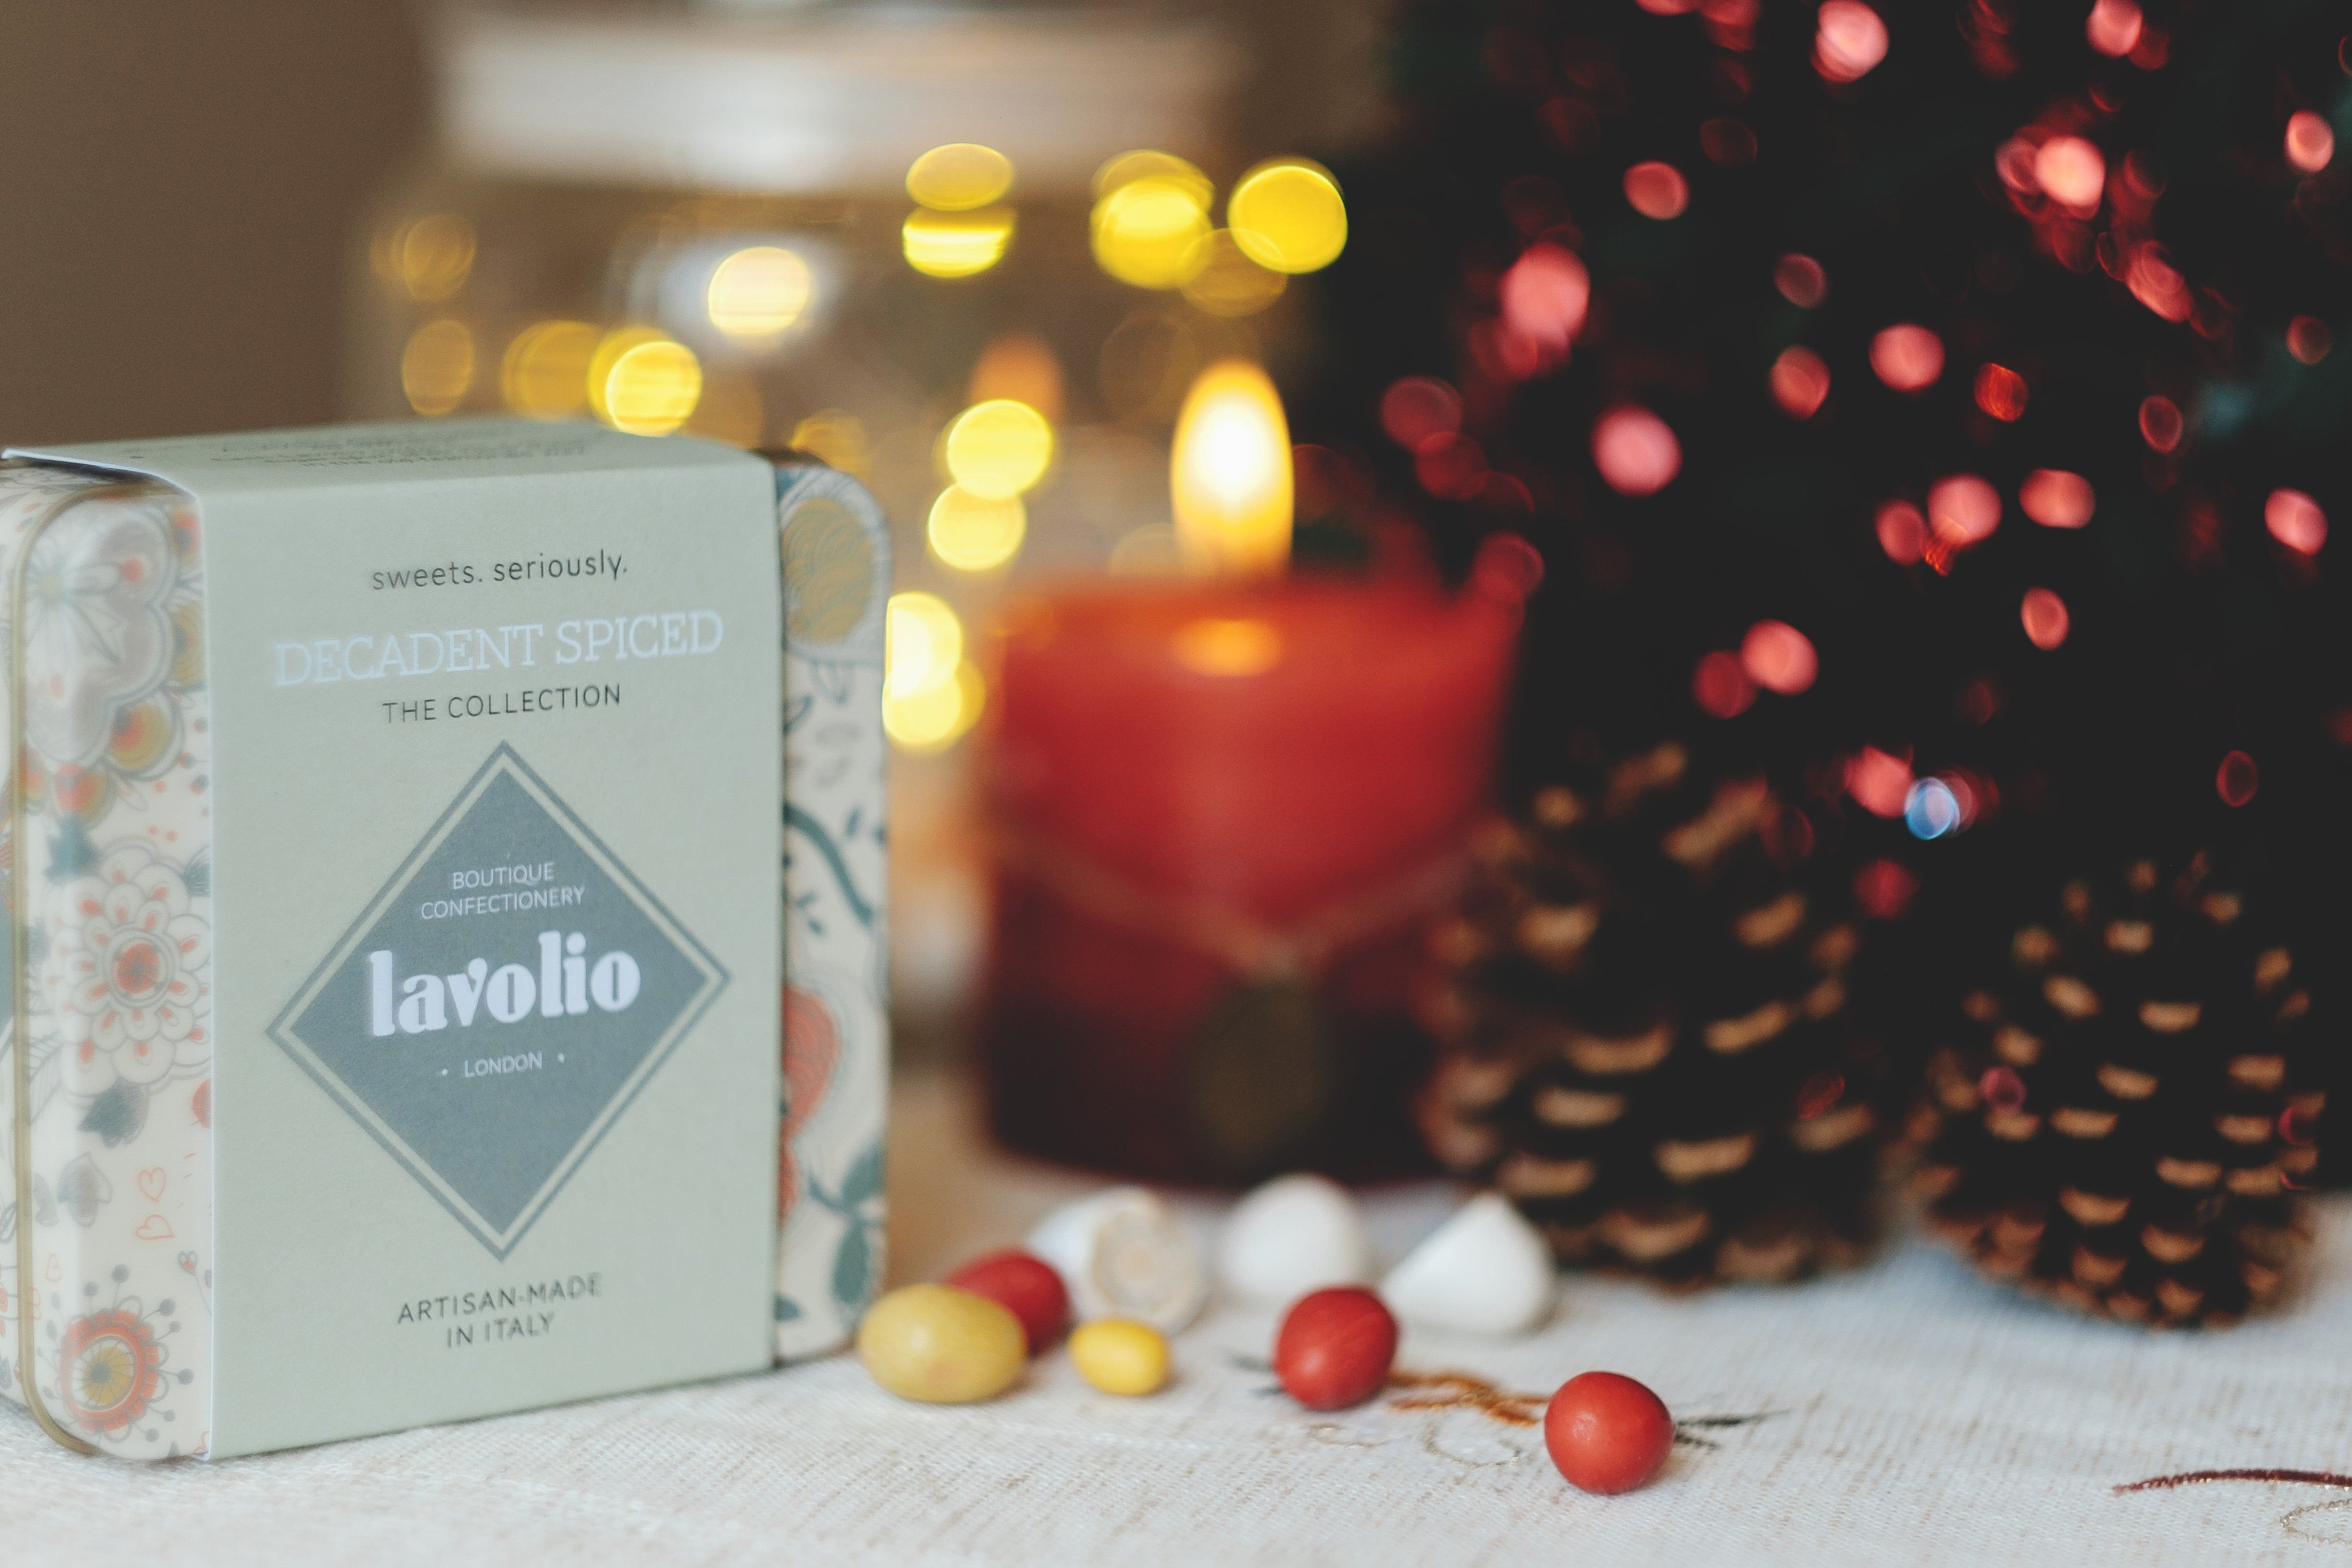 Lavolio london confectionery gifts under £15 artisan-made sweets